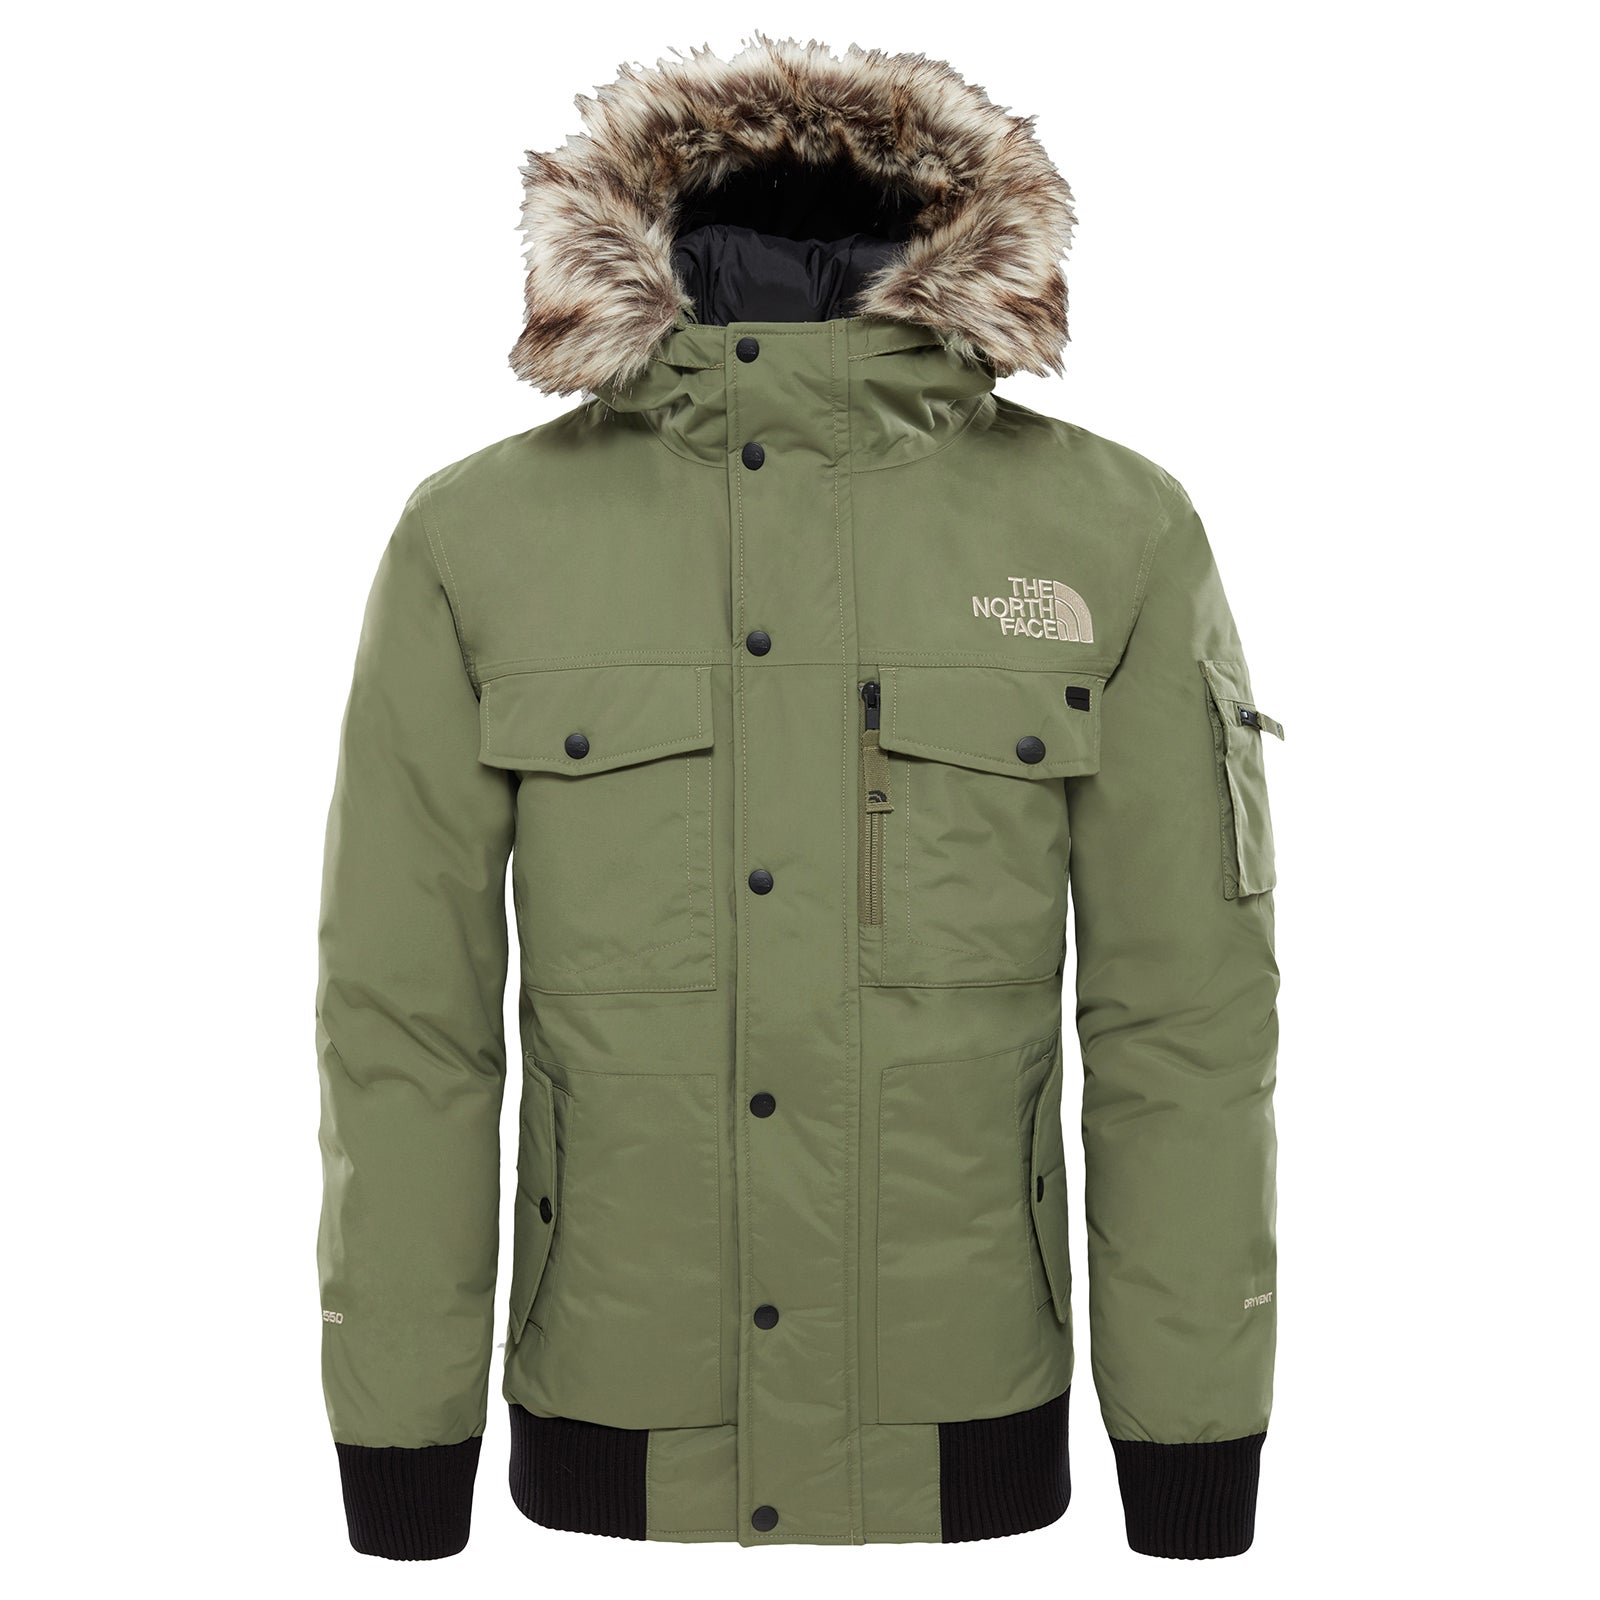 c409d2734 Details about The North Face Gotham Mens Jacket Down - Four Leaf Clover All  Sizes